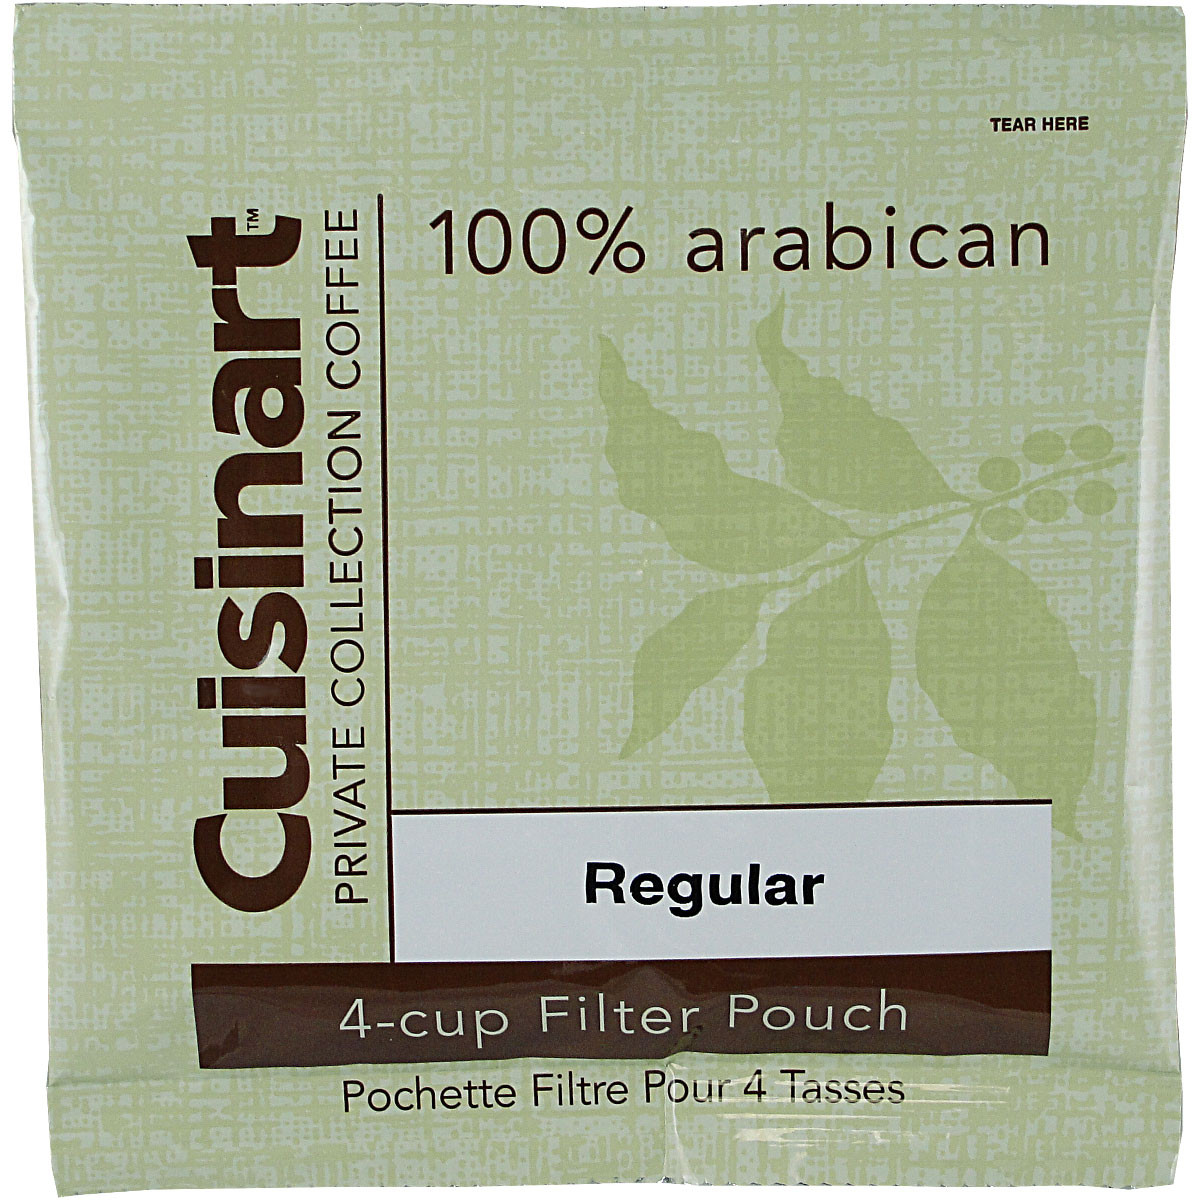 Coffee Makers That Use Pouches : Cuisinart Private Collection Coffee 4-cup Filter Pouch Regular, Case of 100 WallMountDryer.com